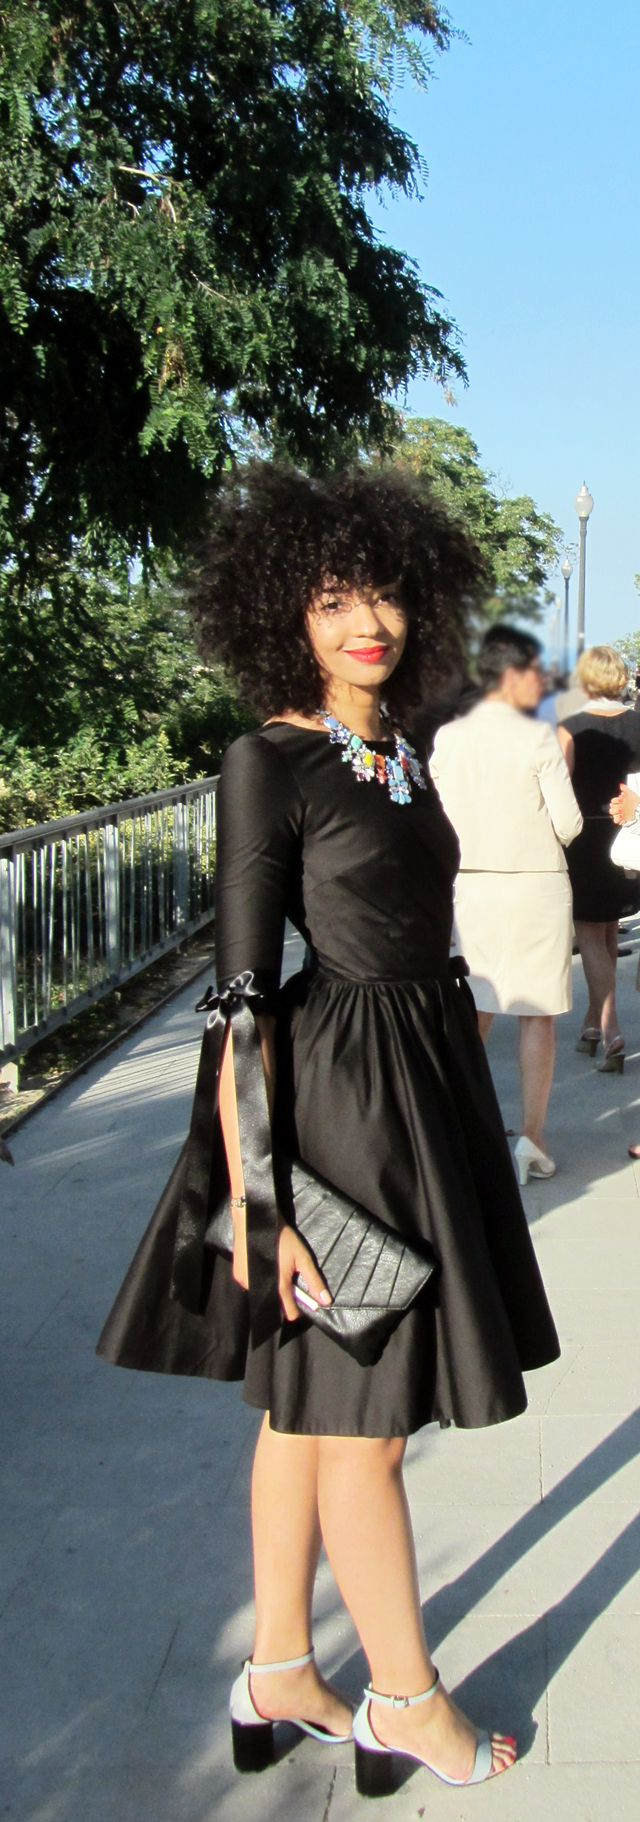 #mercredie #fashion #blogger #geneva #switzerland #blog #mode #inspiration #idees #tenues #outfit #wedding #dress #mariage #robe #coiffure #hair #style #curly #nappy #afro #natural #hair #cheveux #frises #naturels #delphine #noire #manivet #la #redoute #satin #bow #noeud #escarpins #noeuds #zara #2014 #statement #necklace #2013